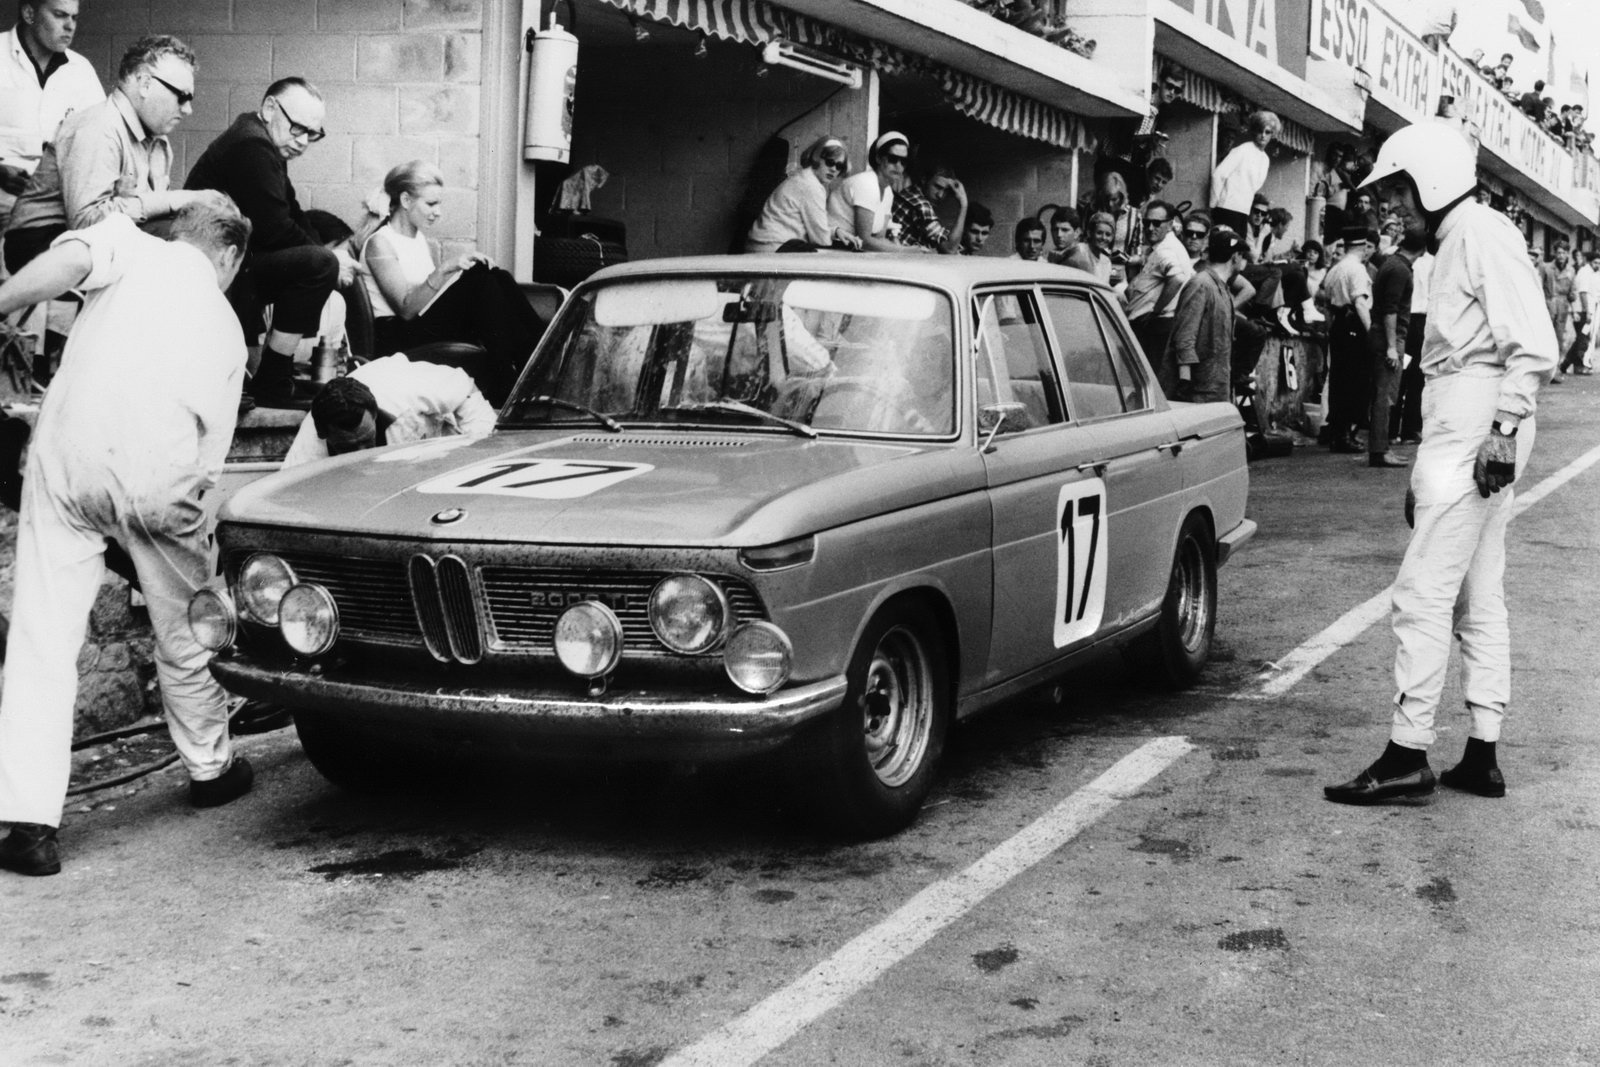 Photo 3 of 9 in In A Single Lap, The Neue Klasse Launched BMW's Racing Success